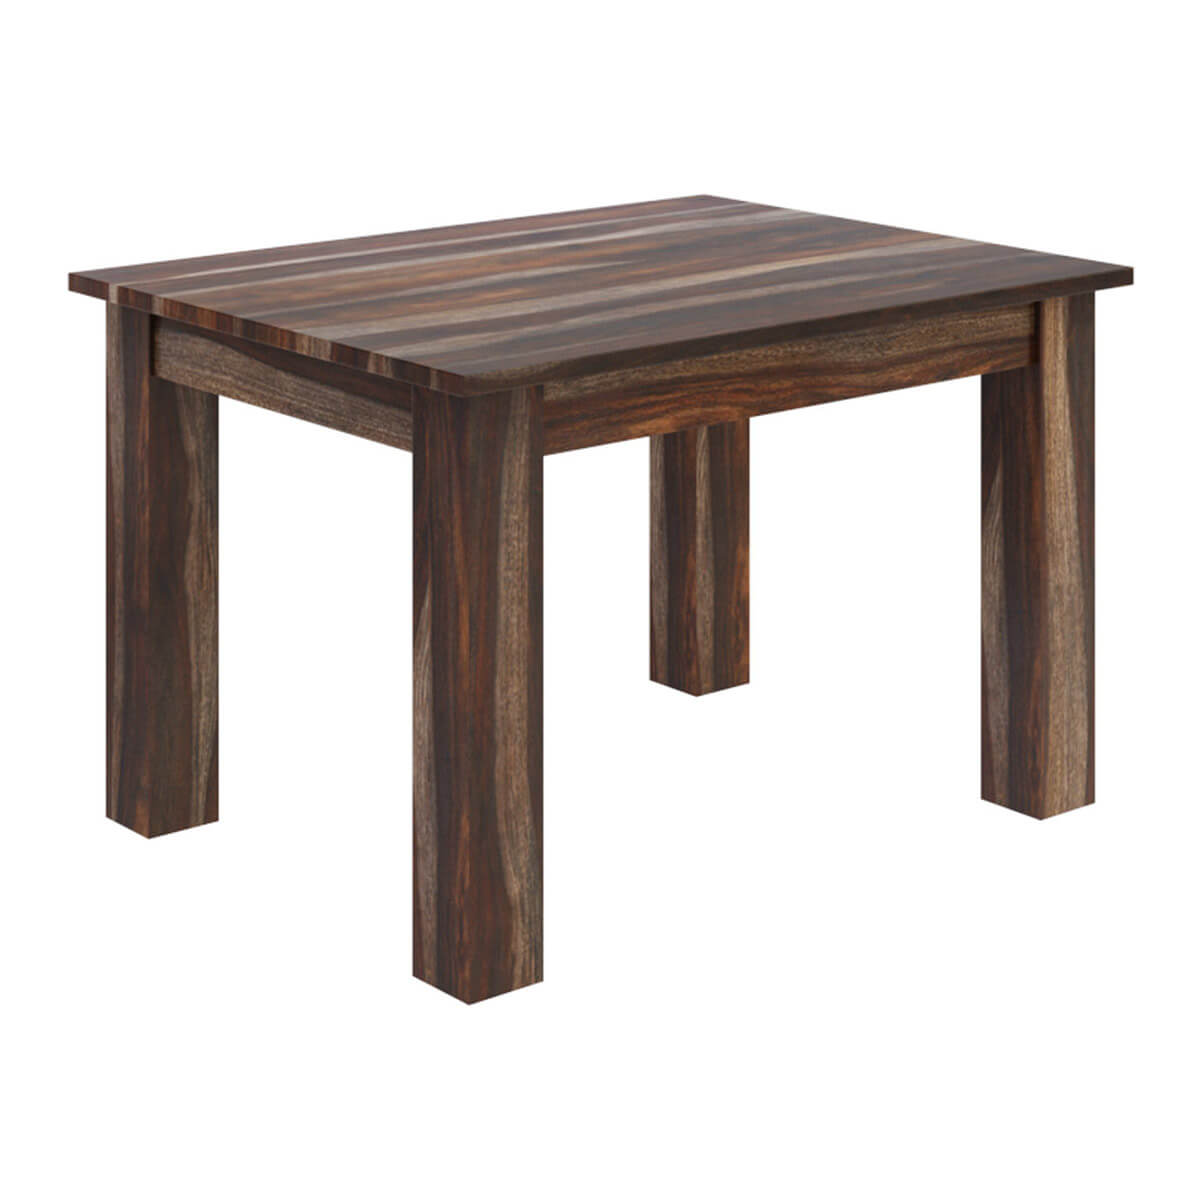 Alabama modern rustic solid wood rectangular dining table for Contemporary rectangular dining table